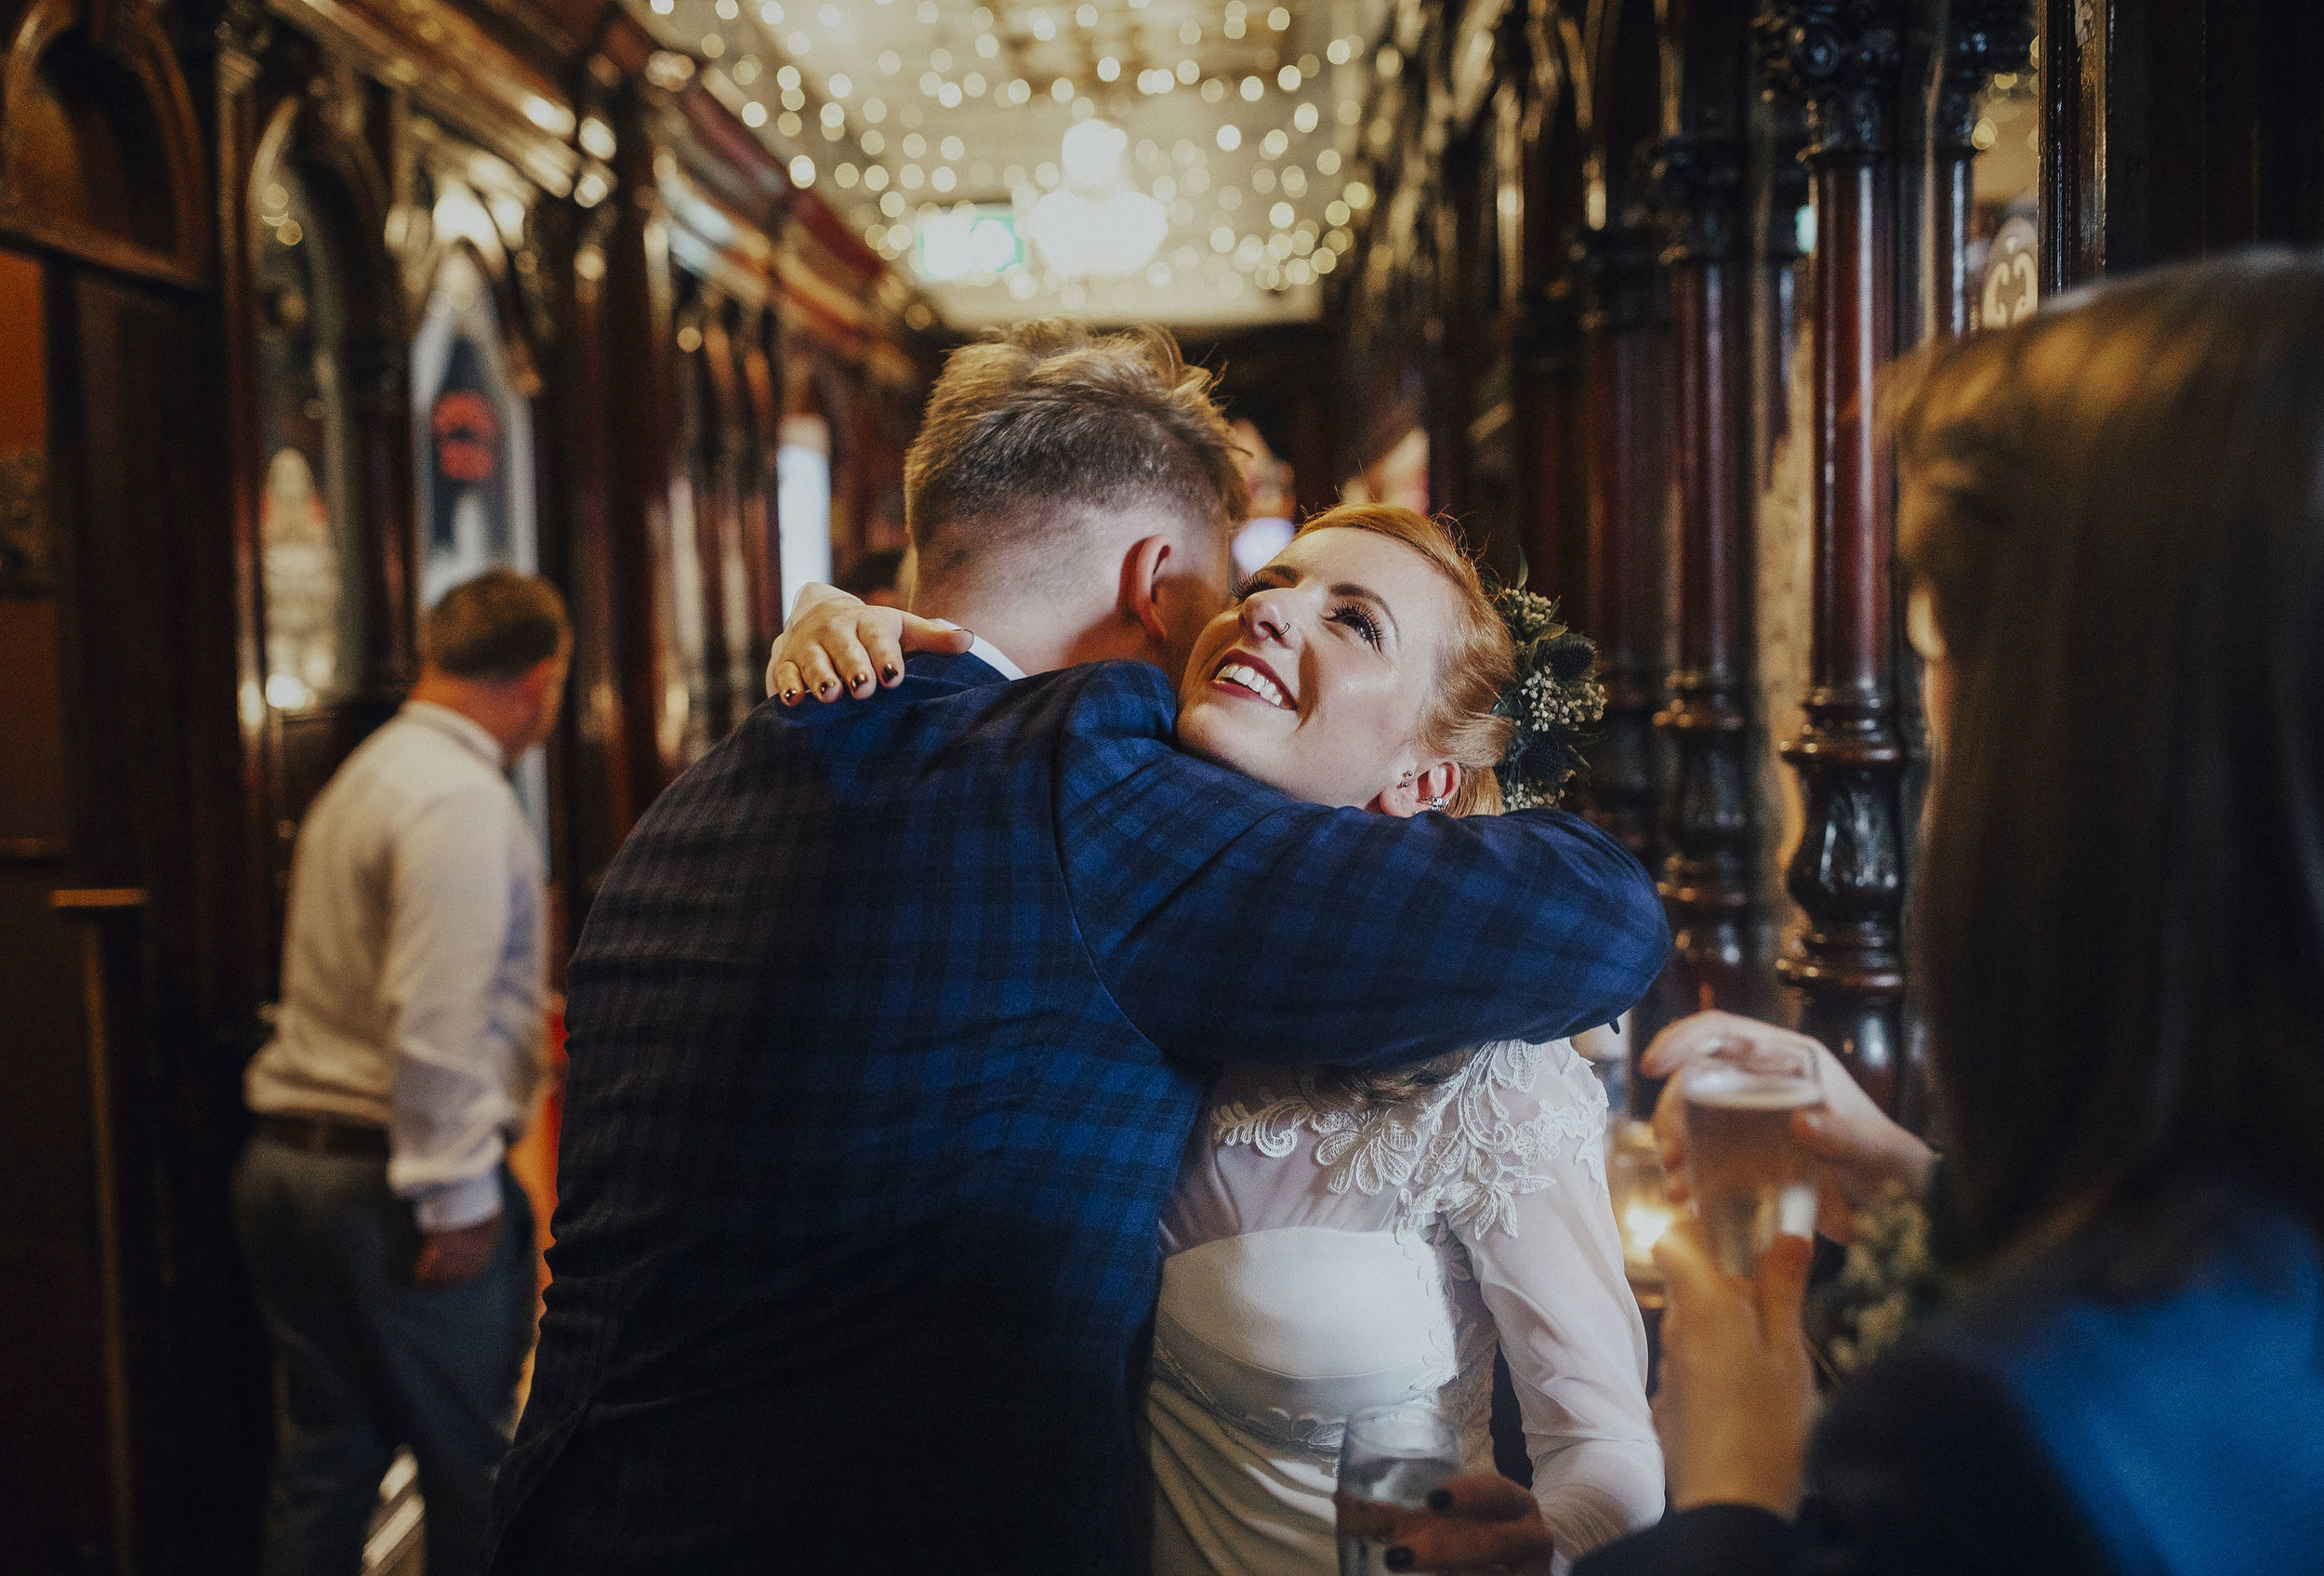 SAME_SEX_WEDDING_PHOTOGRAPHER_SLOANS_GLASGOW_PJ_PHILLIPS_PHOTOGRAPHY_51.jpg